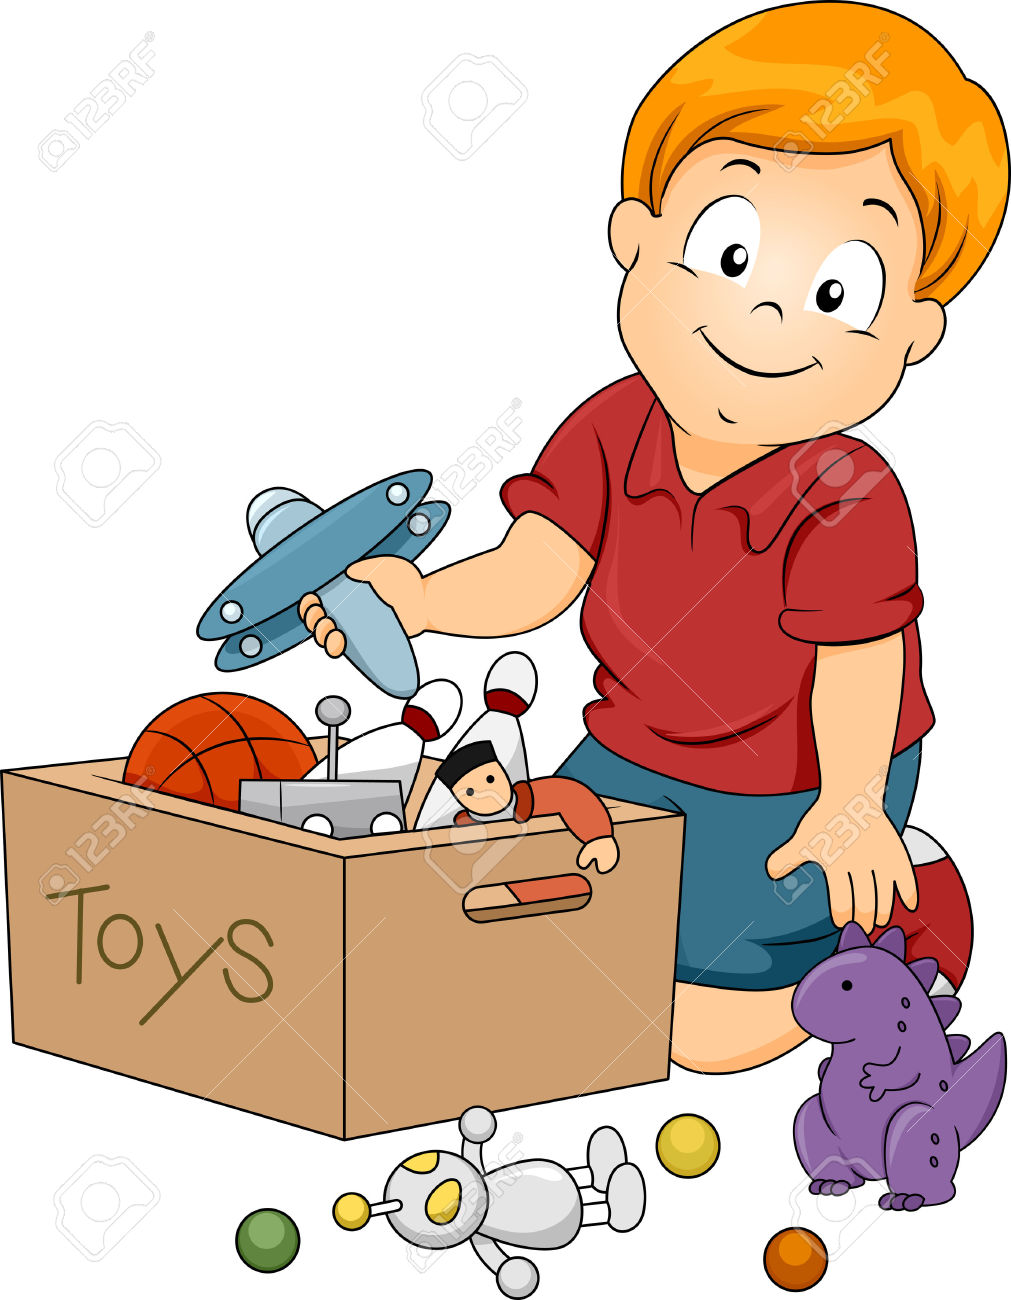 1011x1300 Toy Clipart Preschool Toy